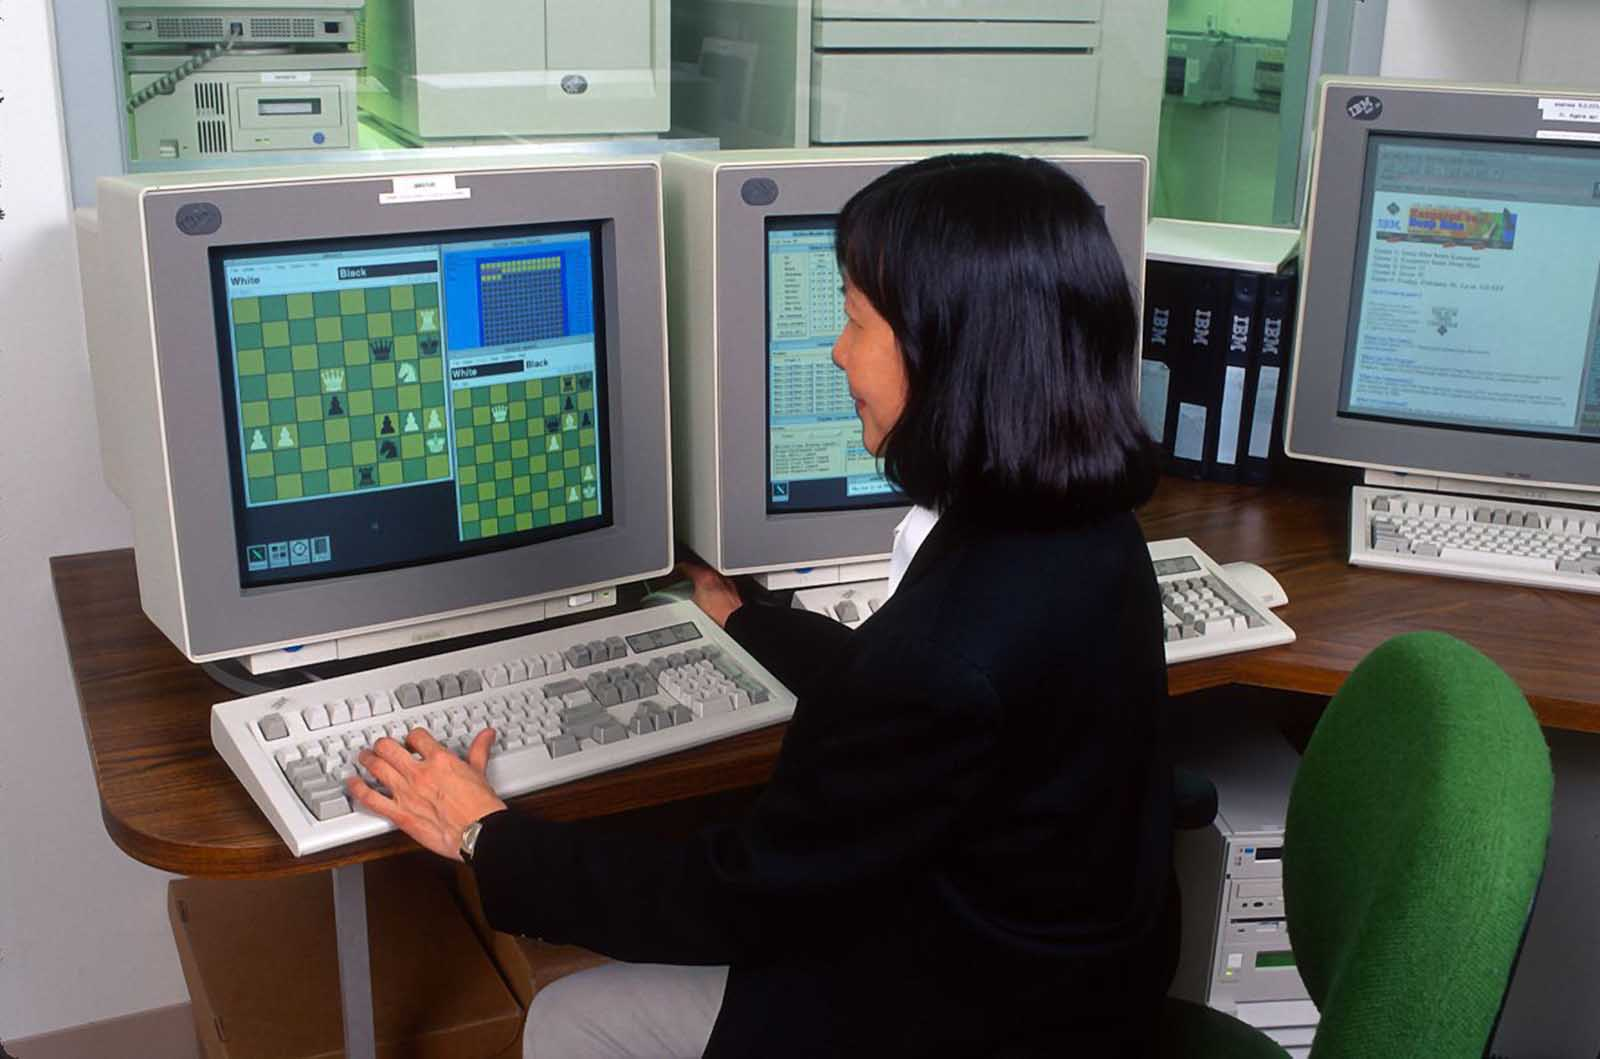 A computer programmer at IBM headquarters in Armonk, New York.